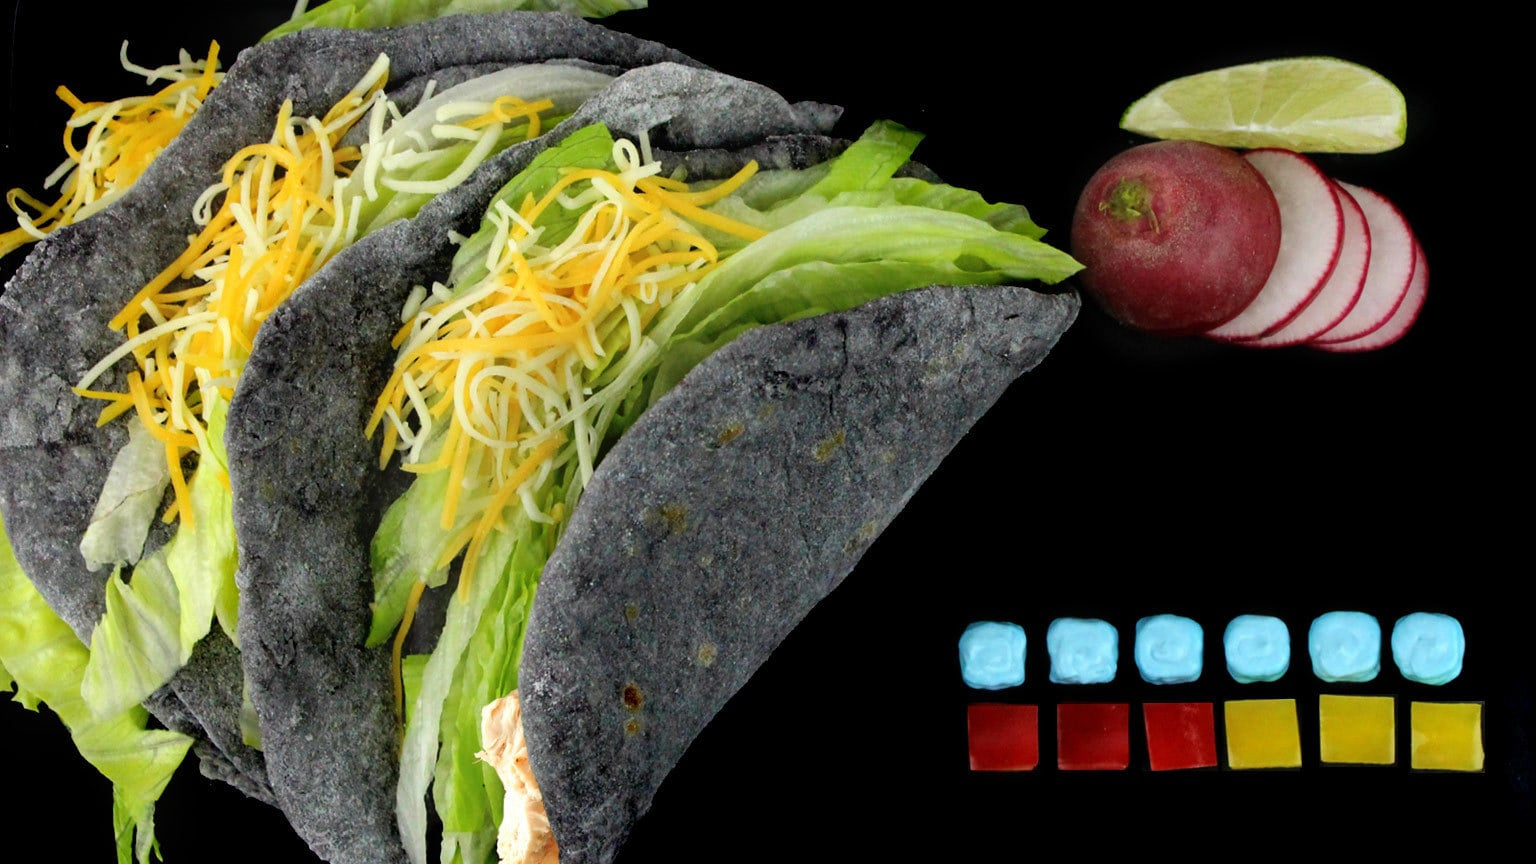 Grand Moff Tacos: You May Devour When Ready